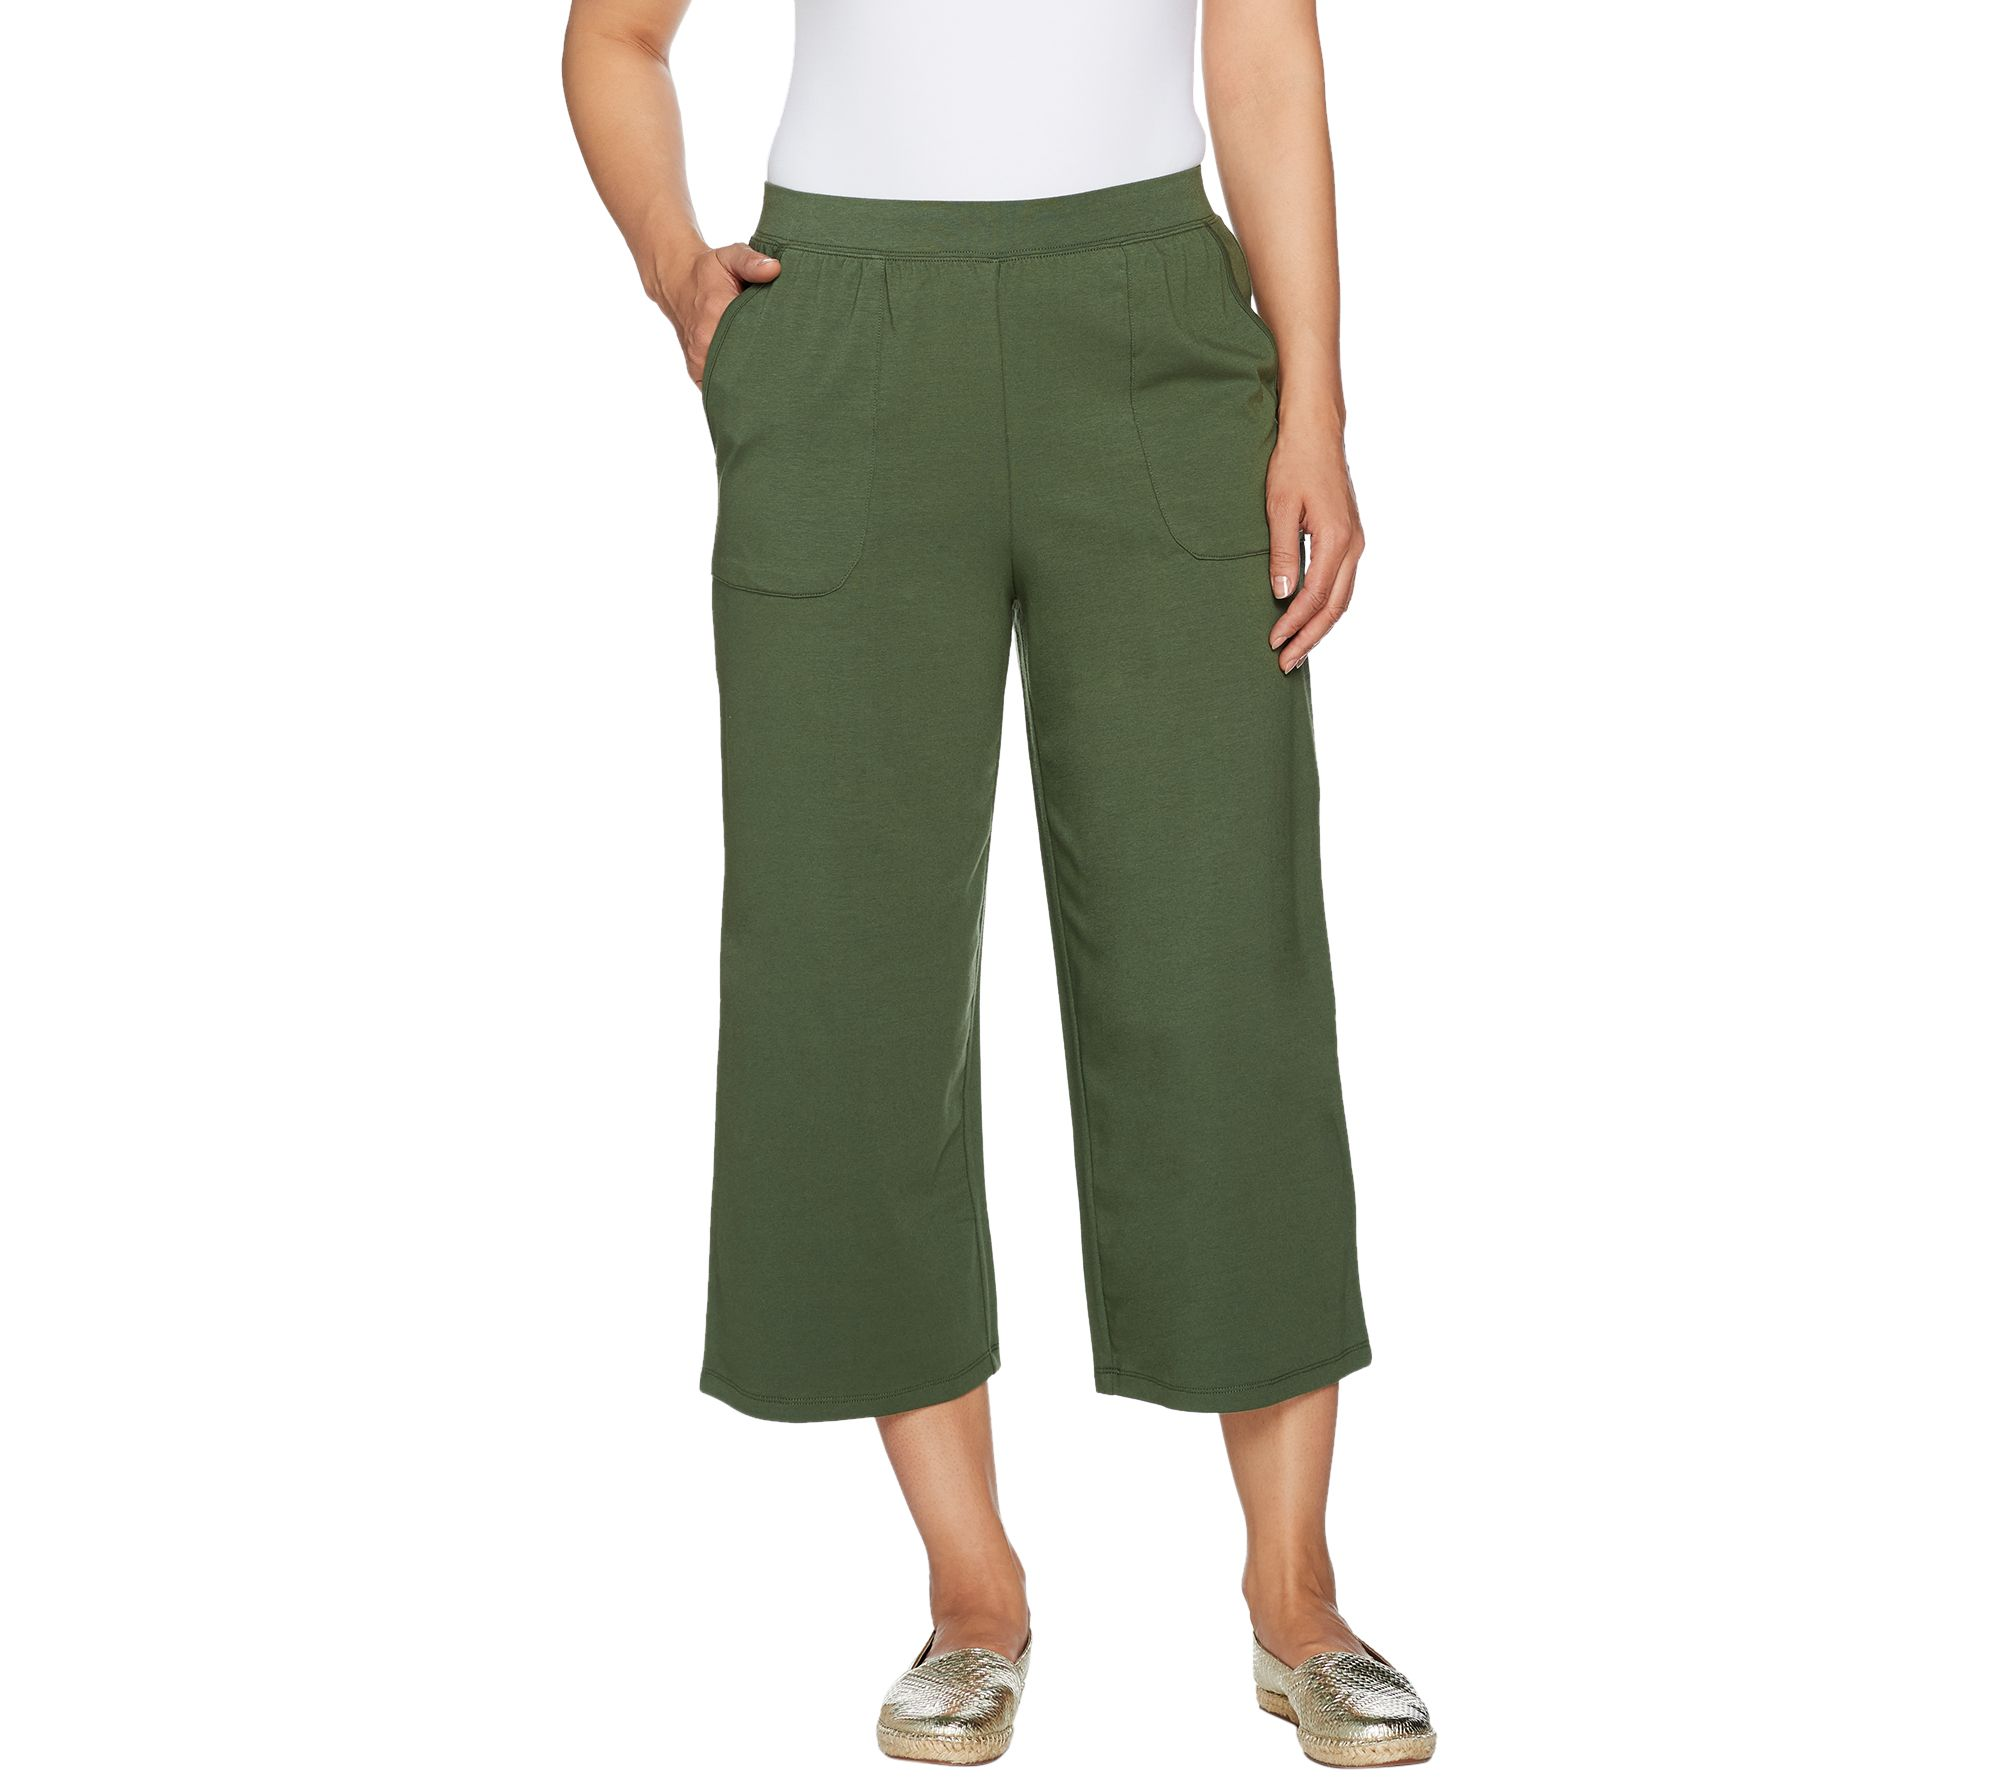 Also, choose slim leg cropped pants/capris as a wider capris will only emphasize skinny legs.I have a girlfriend with skinny legs who only wore maxis for years. She recently started wearing cropped pants like I mentioned and she looks great.